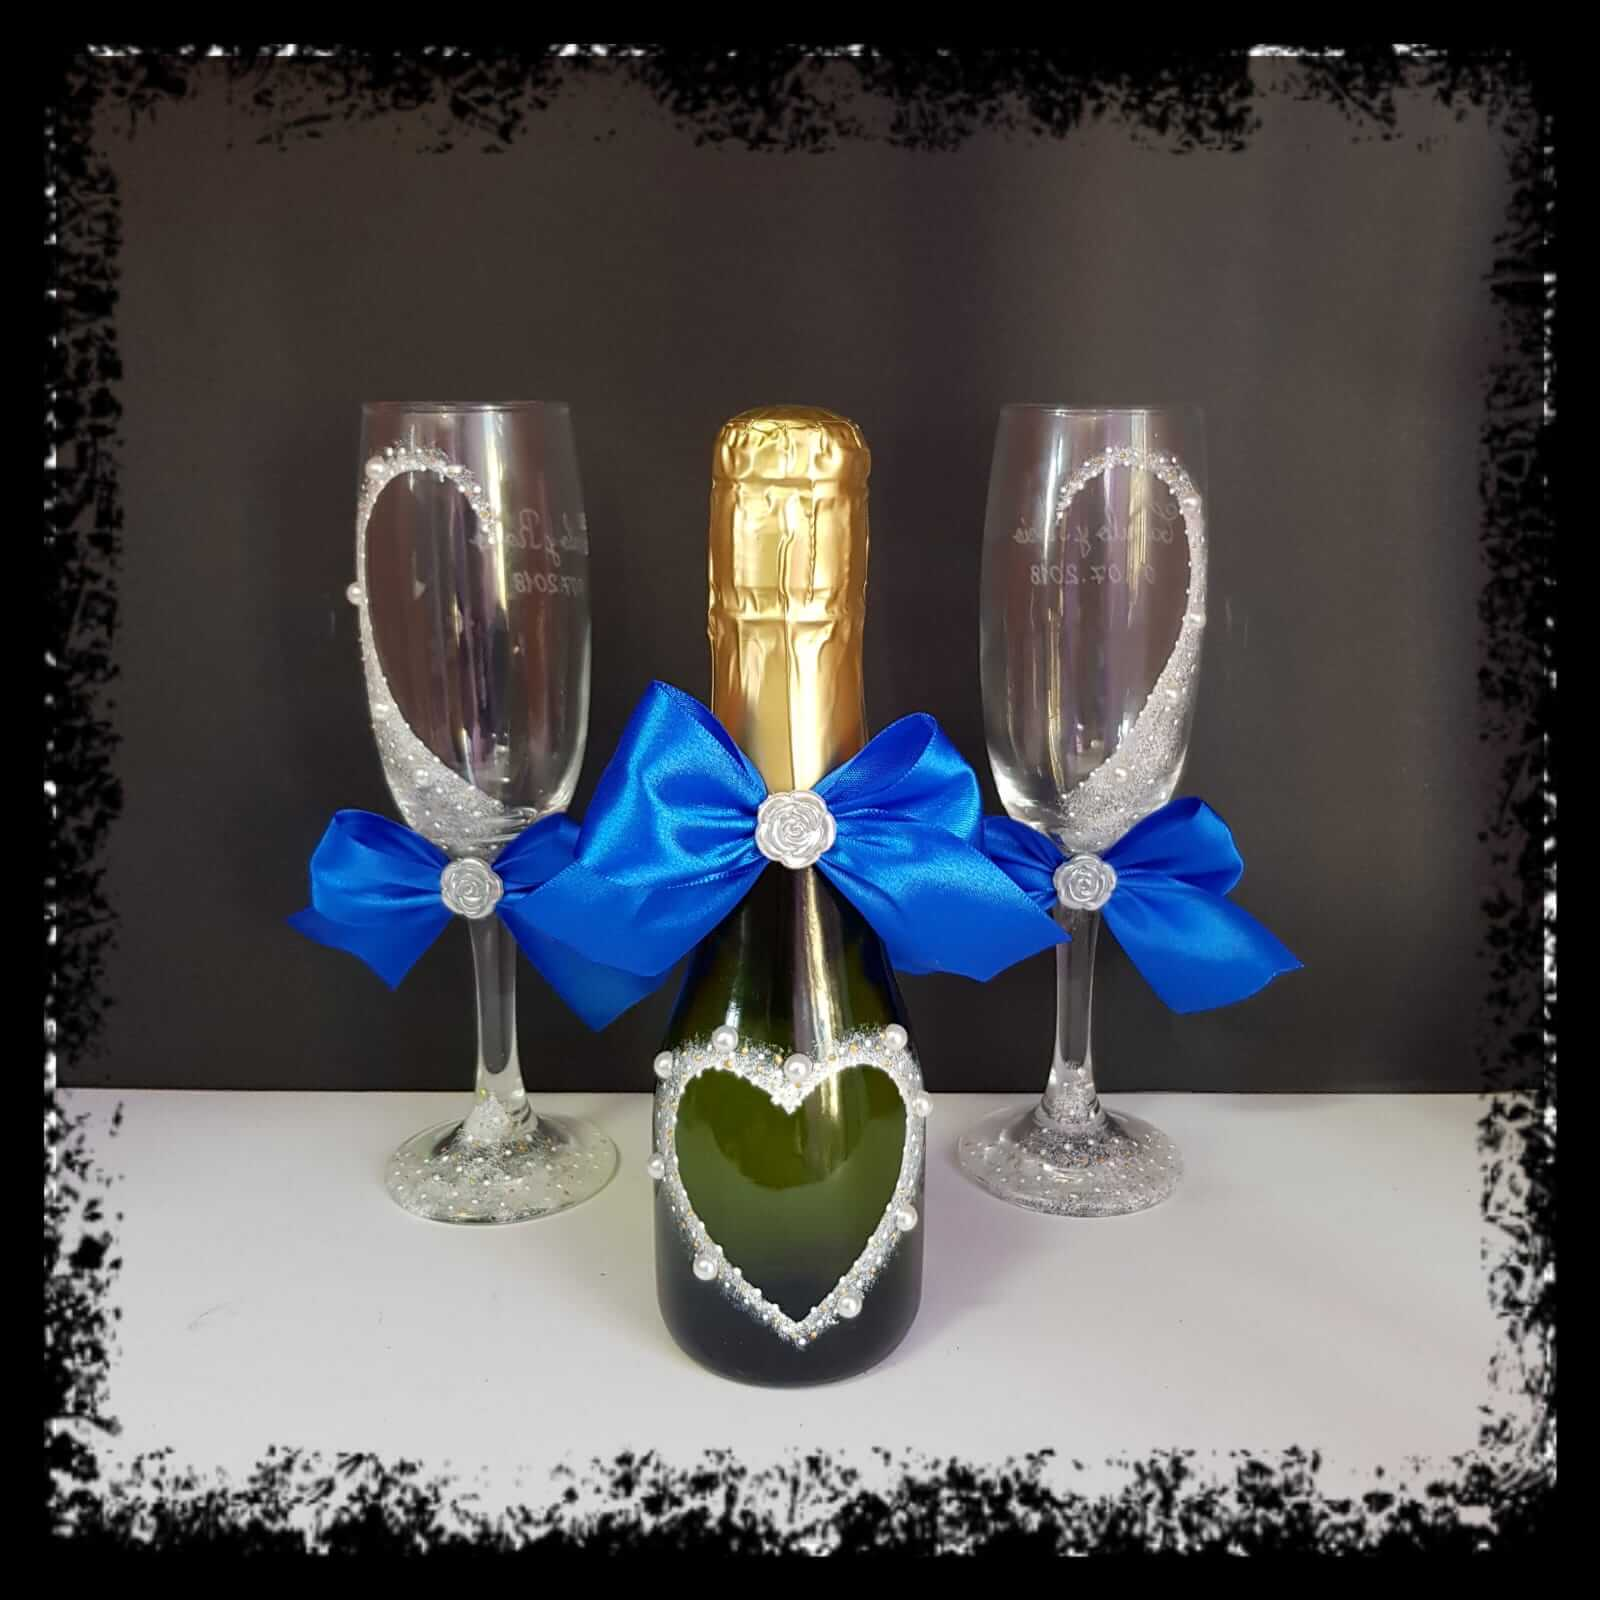 Botellas De Vidrio Decoradas Para Boda Botellas Decoradas